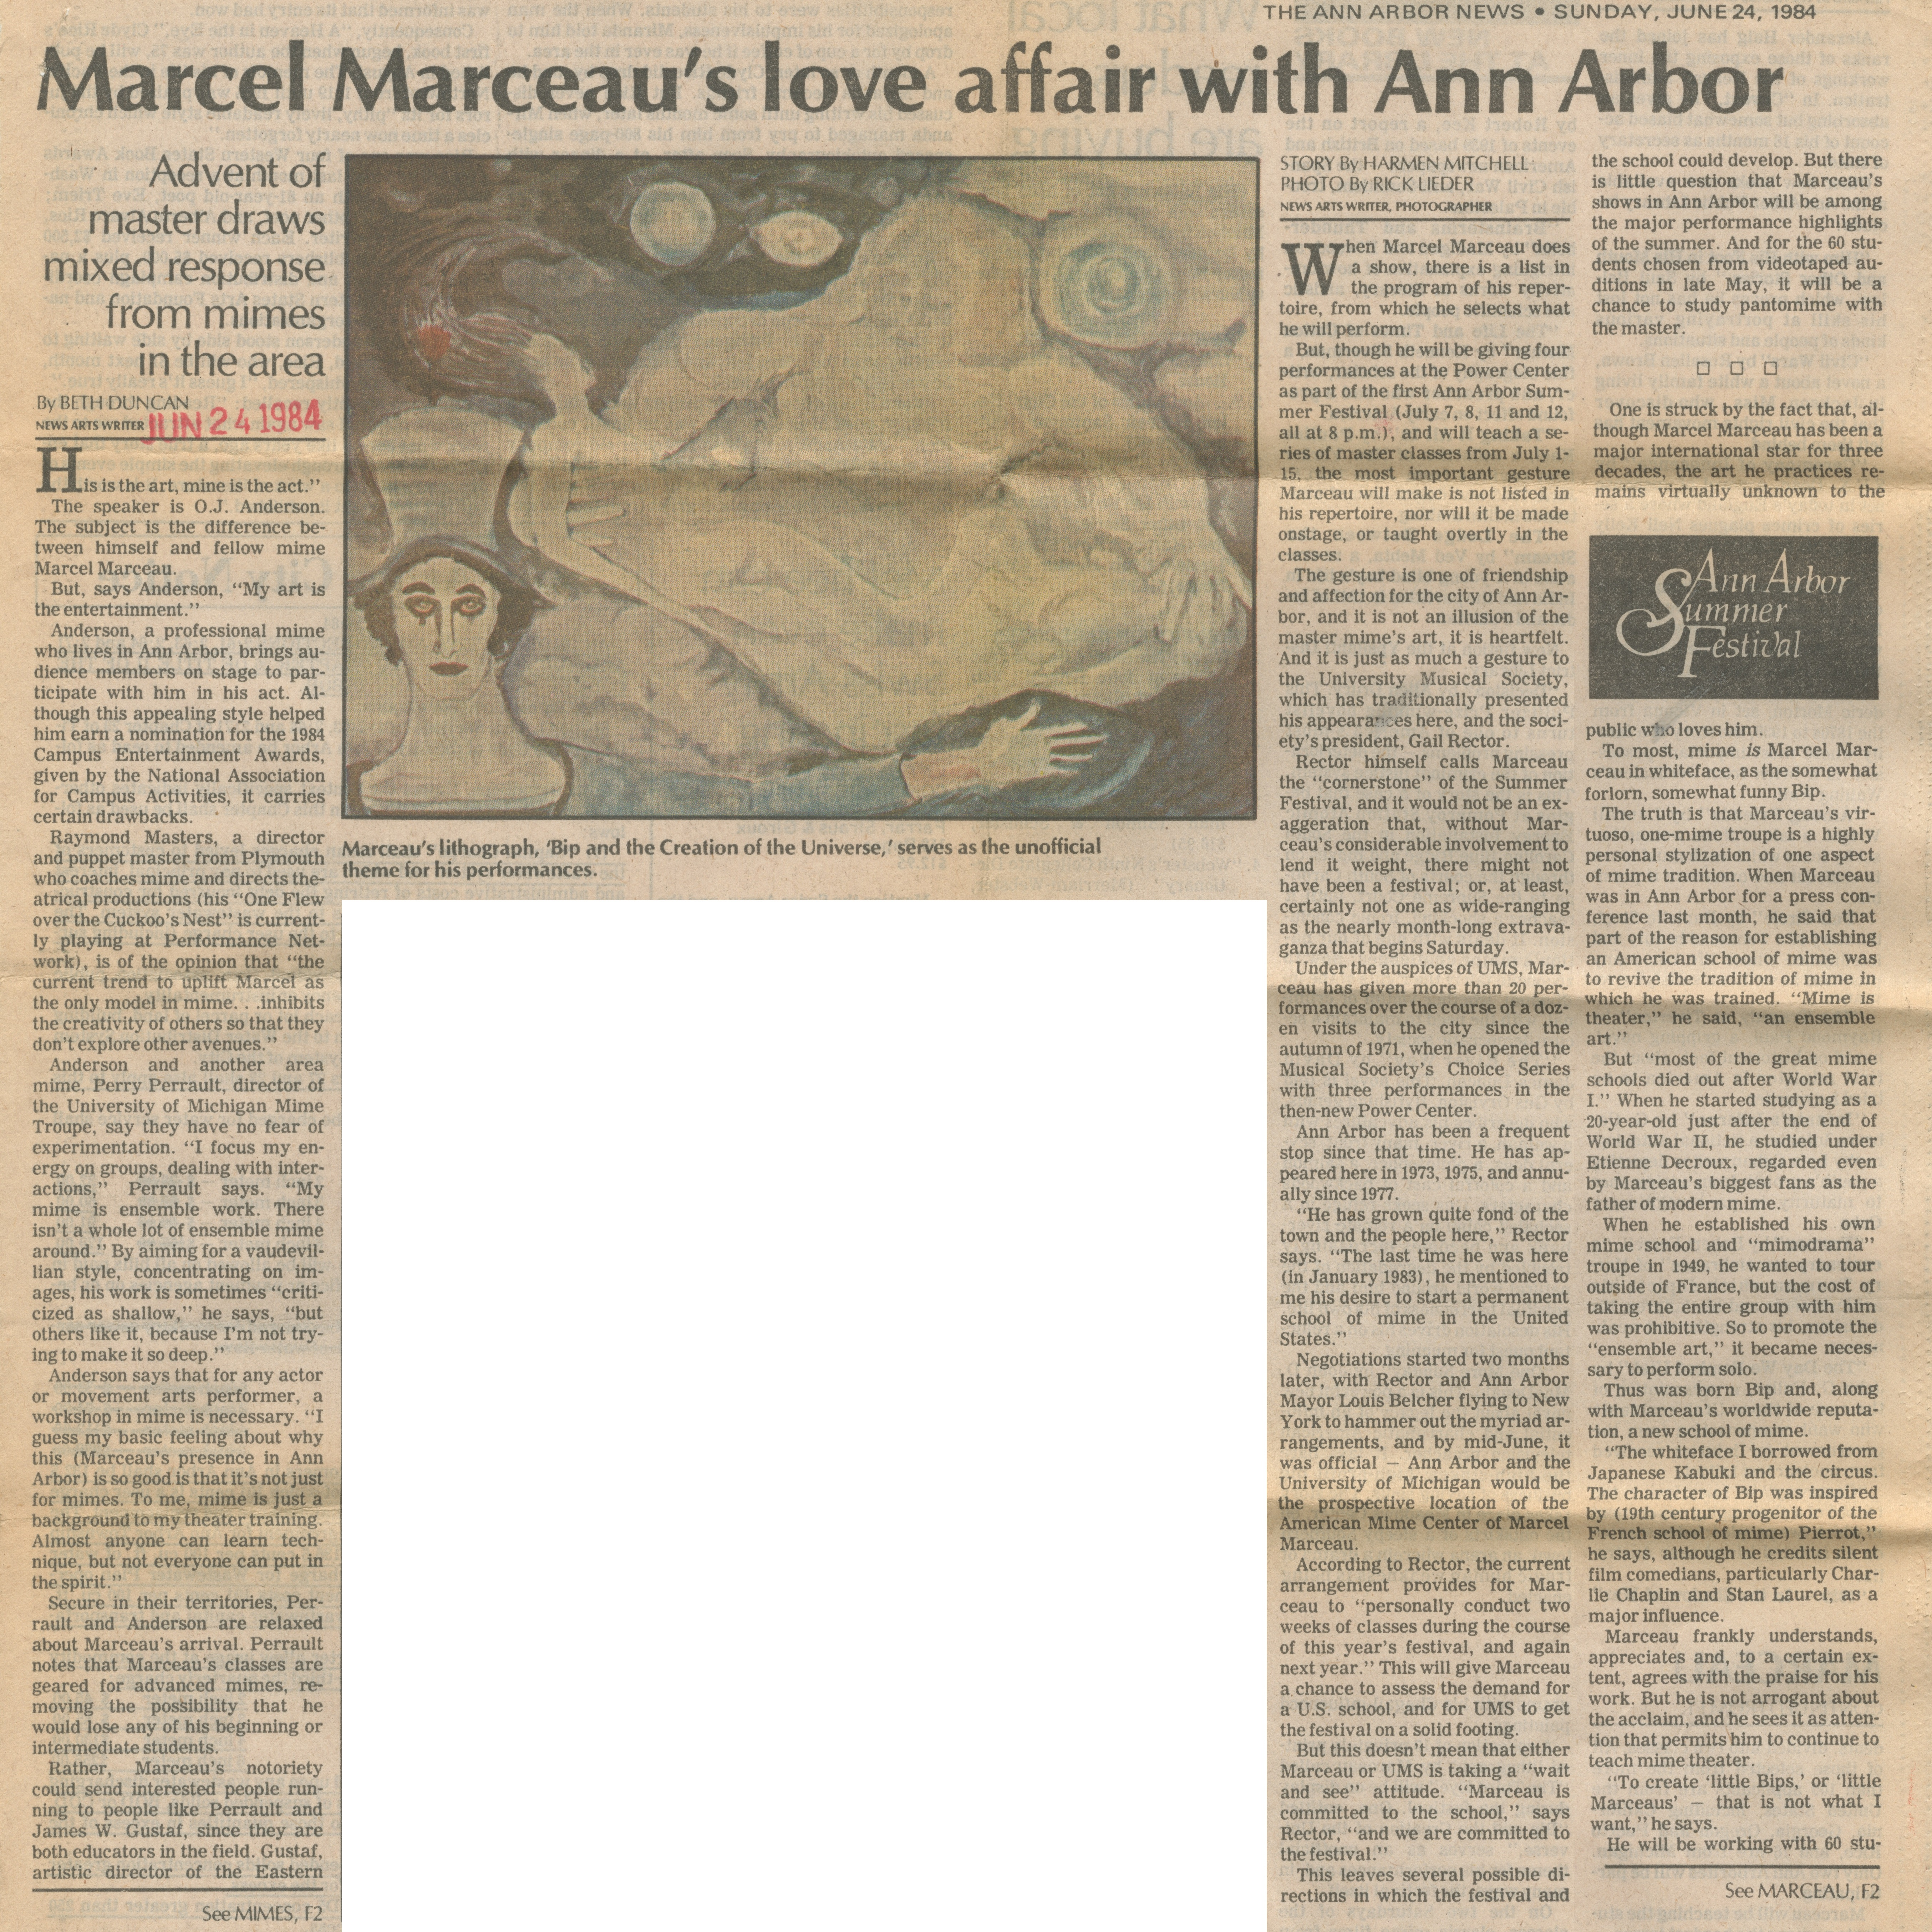 Marcel Marceau's love affair with Ann Arbor image